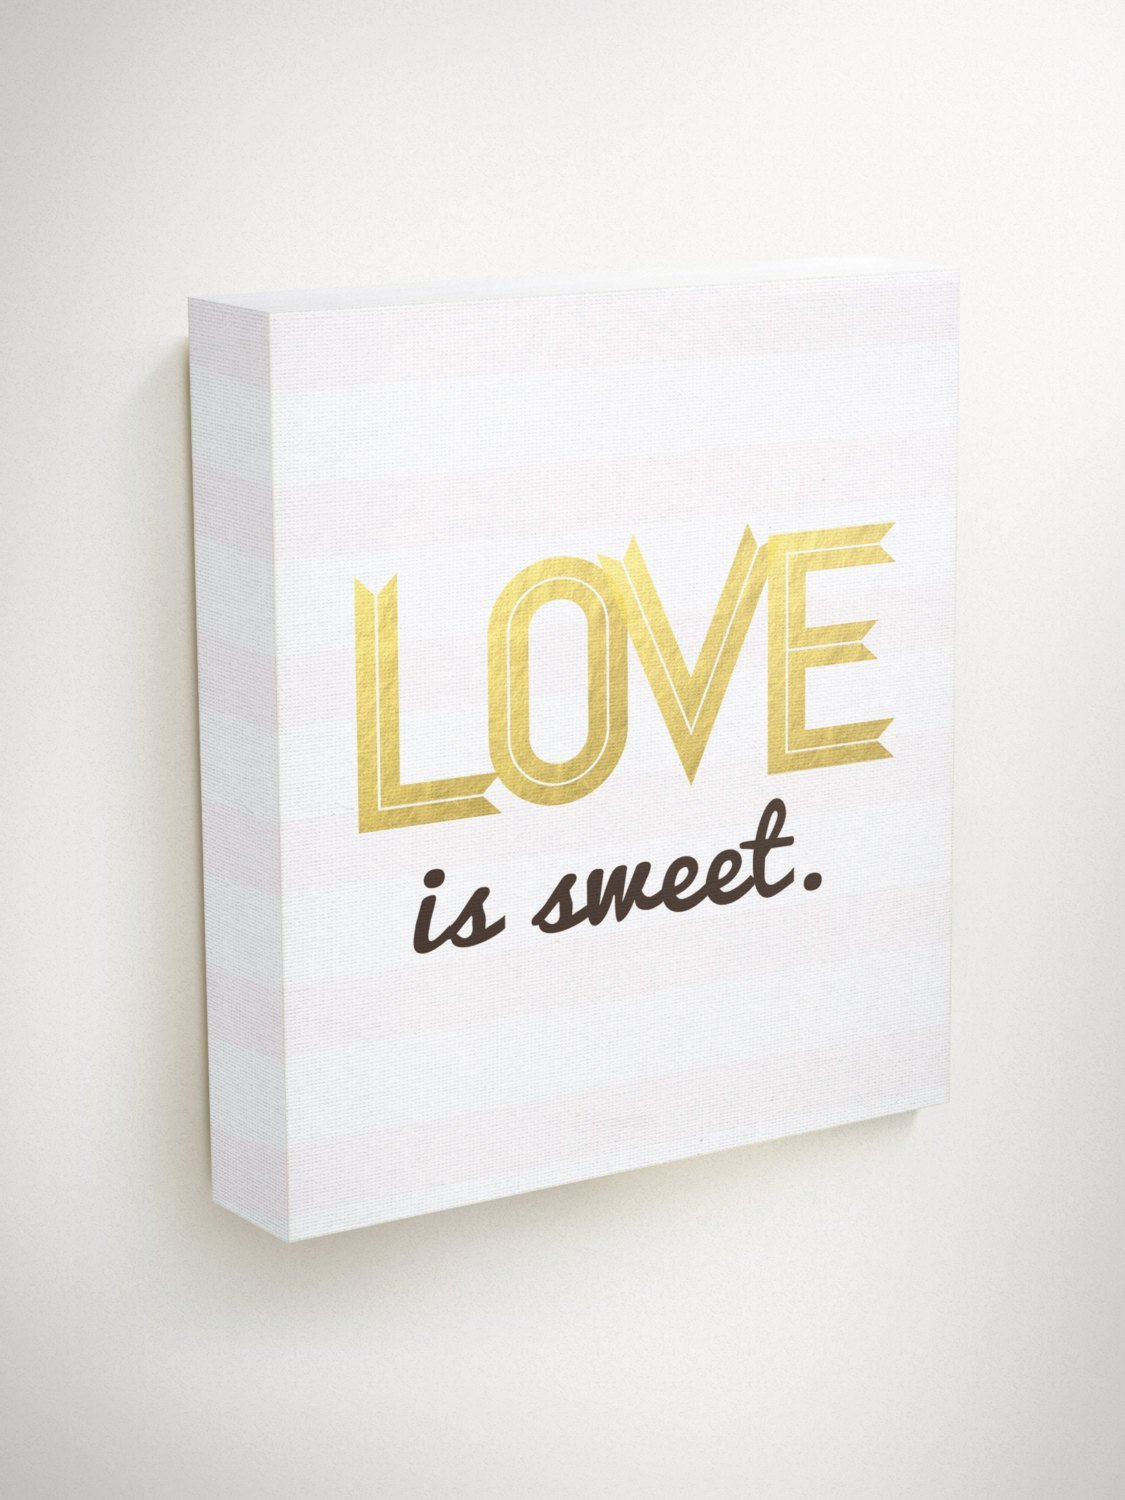 Love is Sweet Sign, Dessert Table Decor, Wedding Centerpieces For Tables, Wedding Favors, Gold Love Sign, Gold Wedding Signs, Wedding Wall